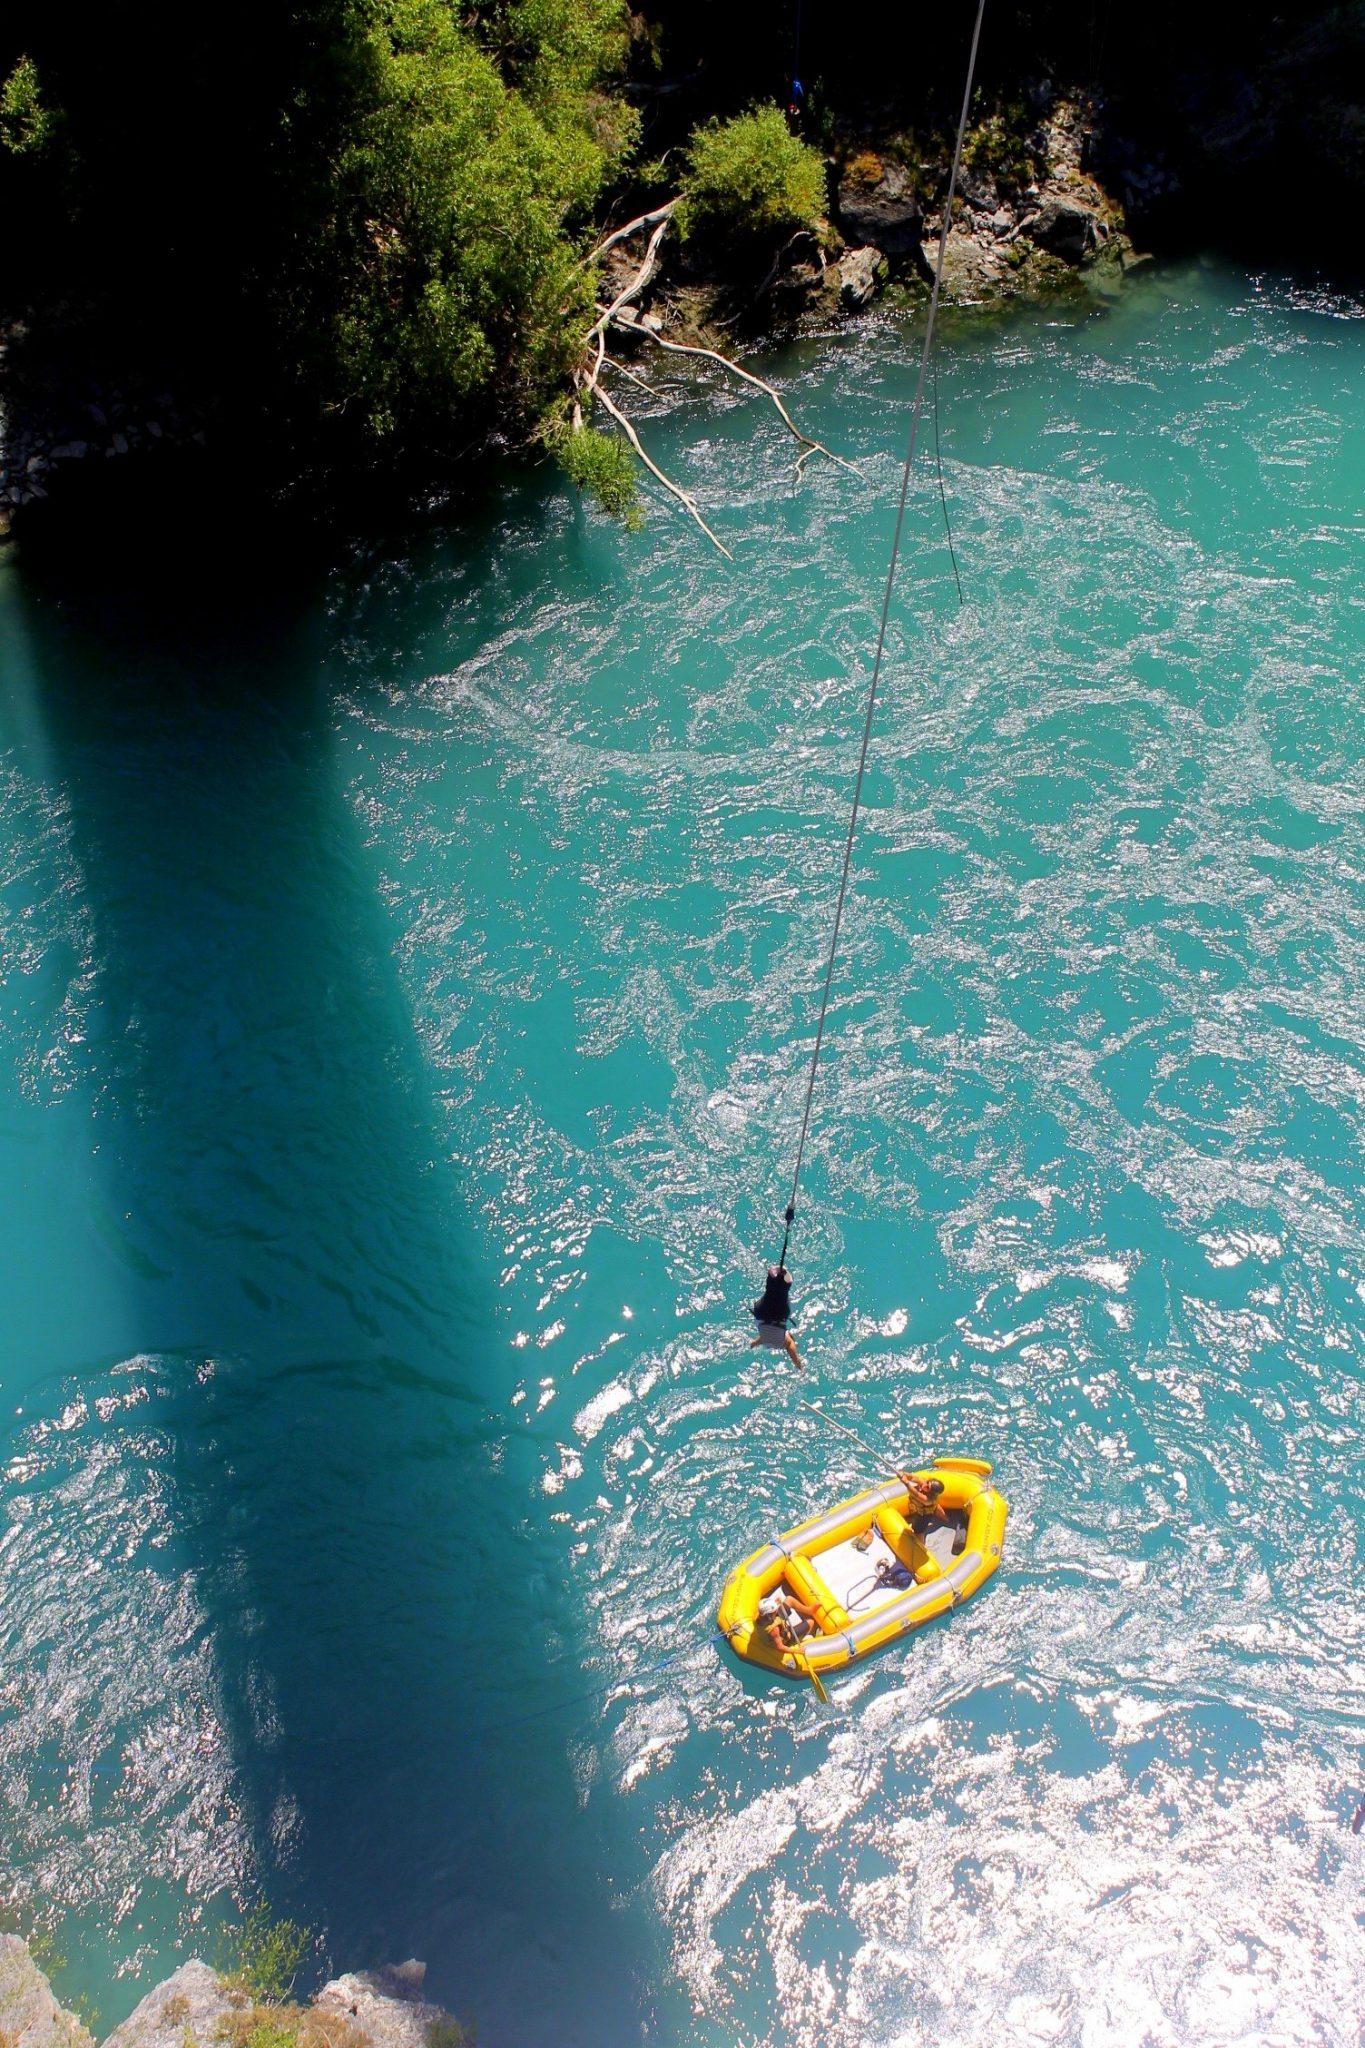 Bungy in Queenstown, New Zealand